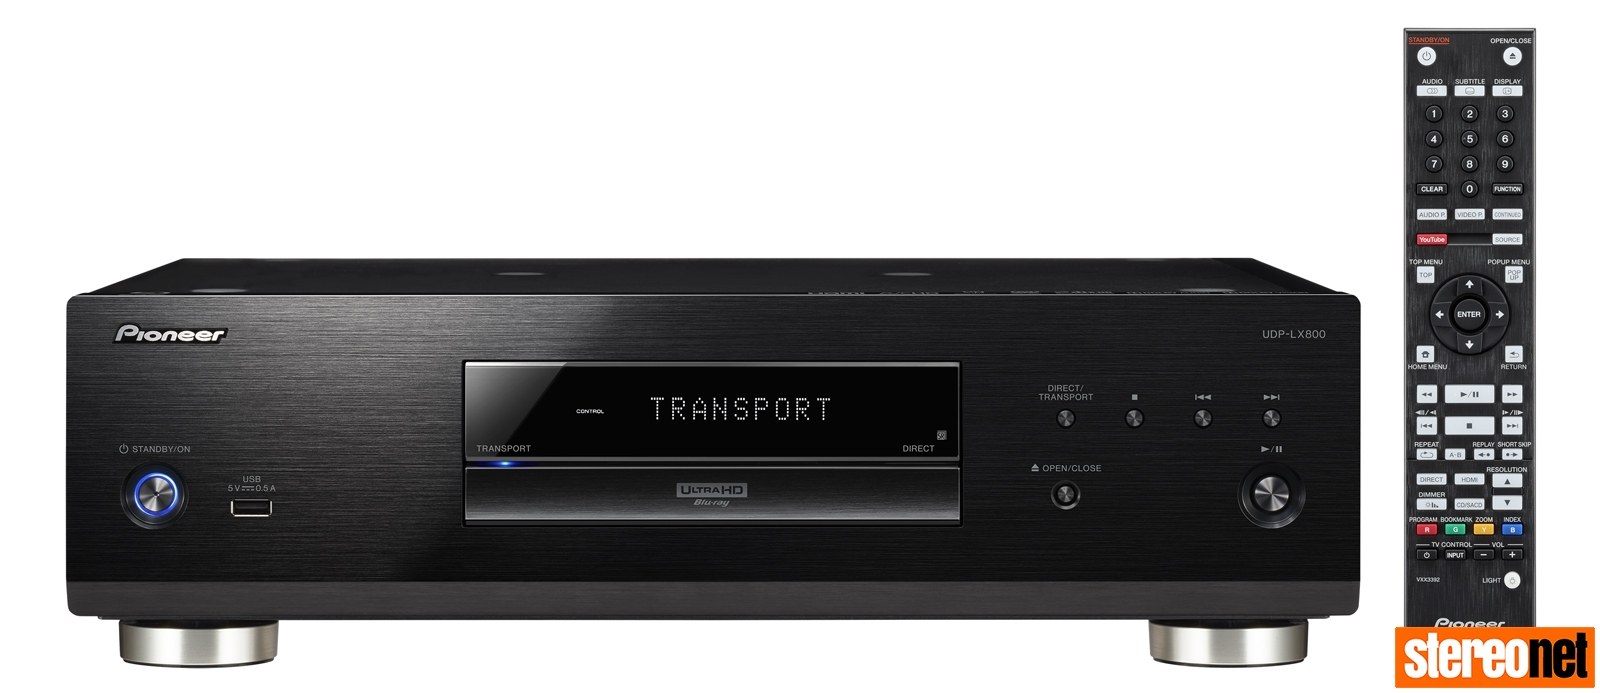 Pioneer UDP-LX800 Universal Disc Player Review | - StereoNET